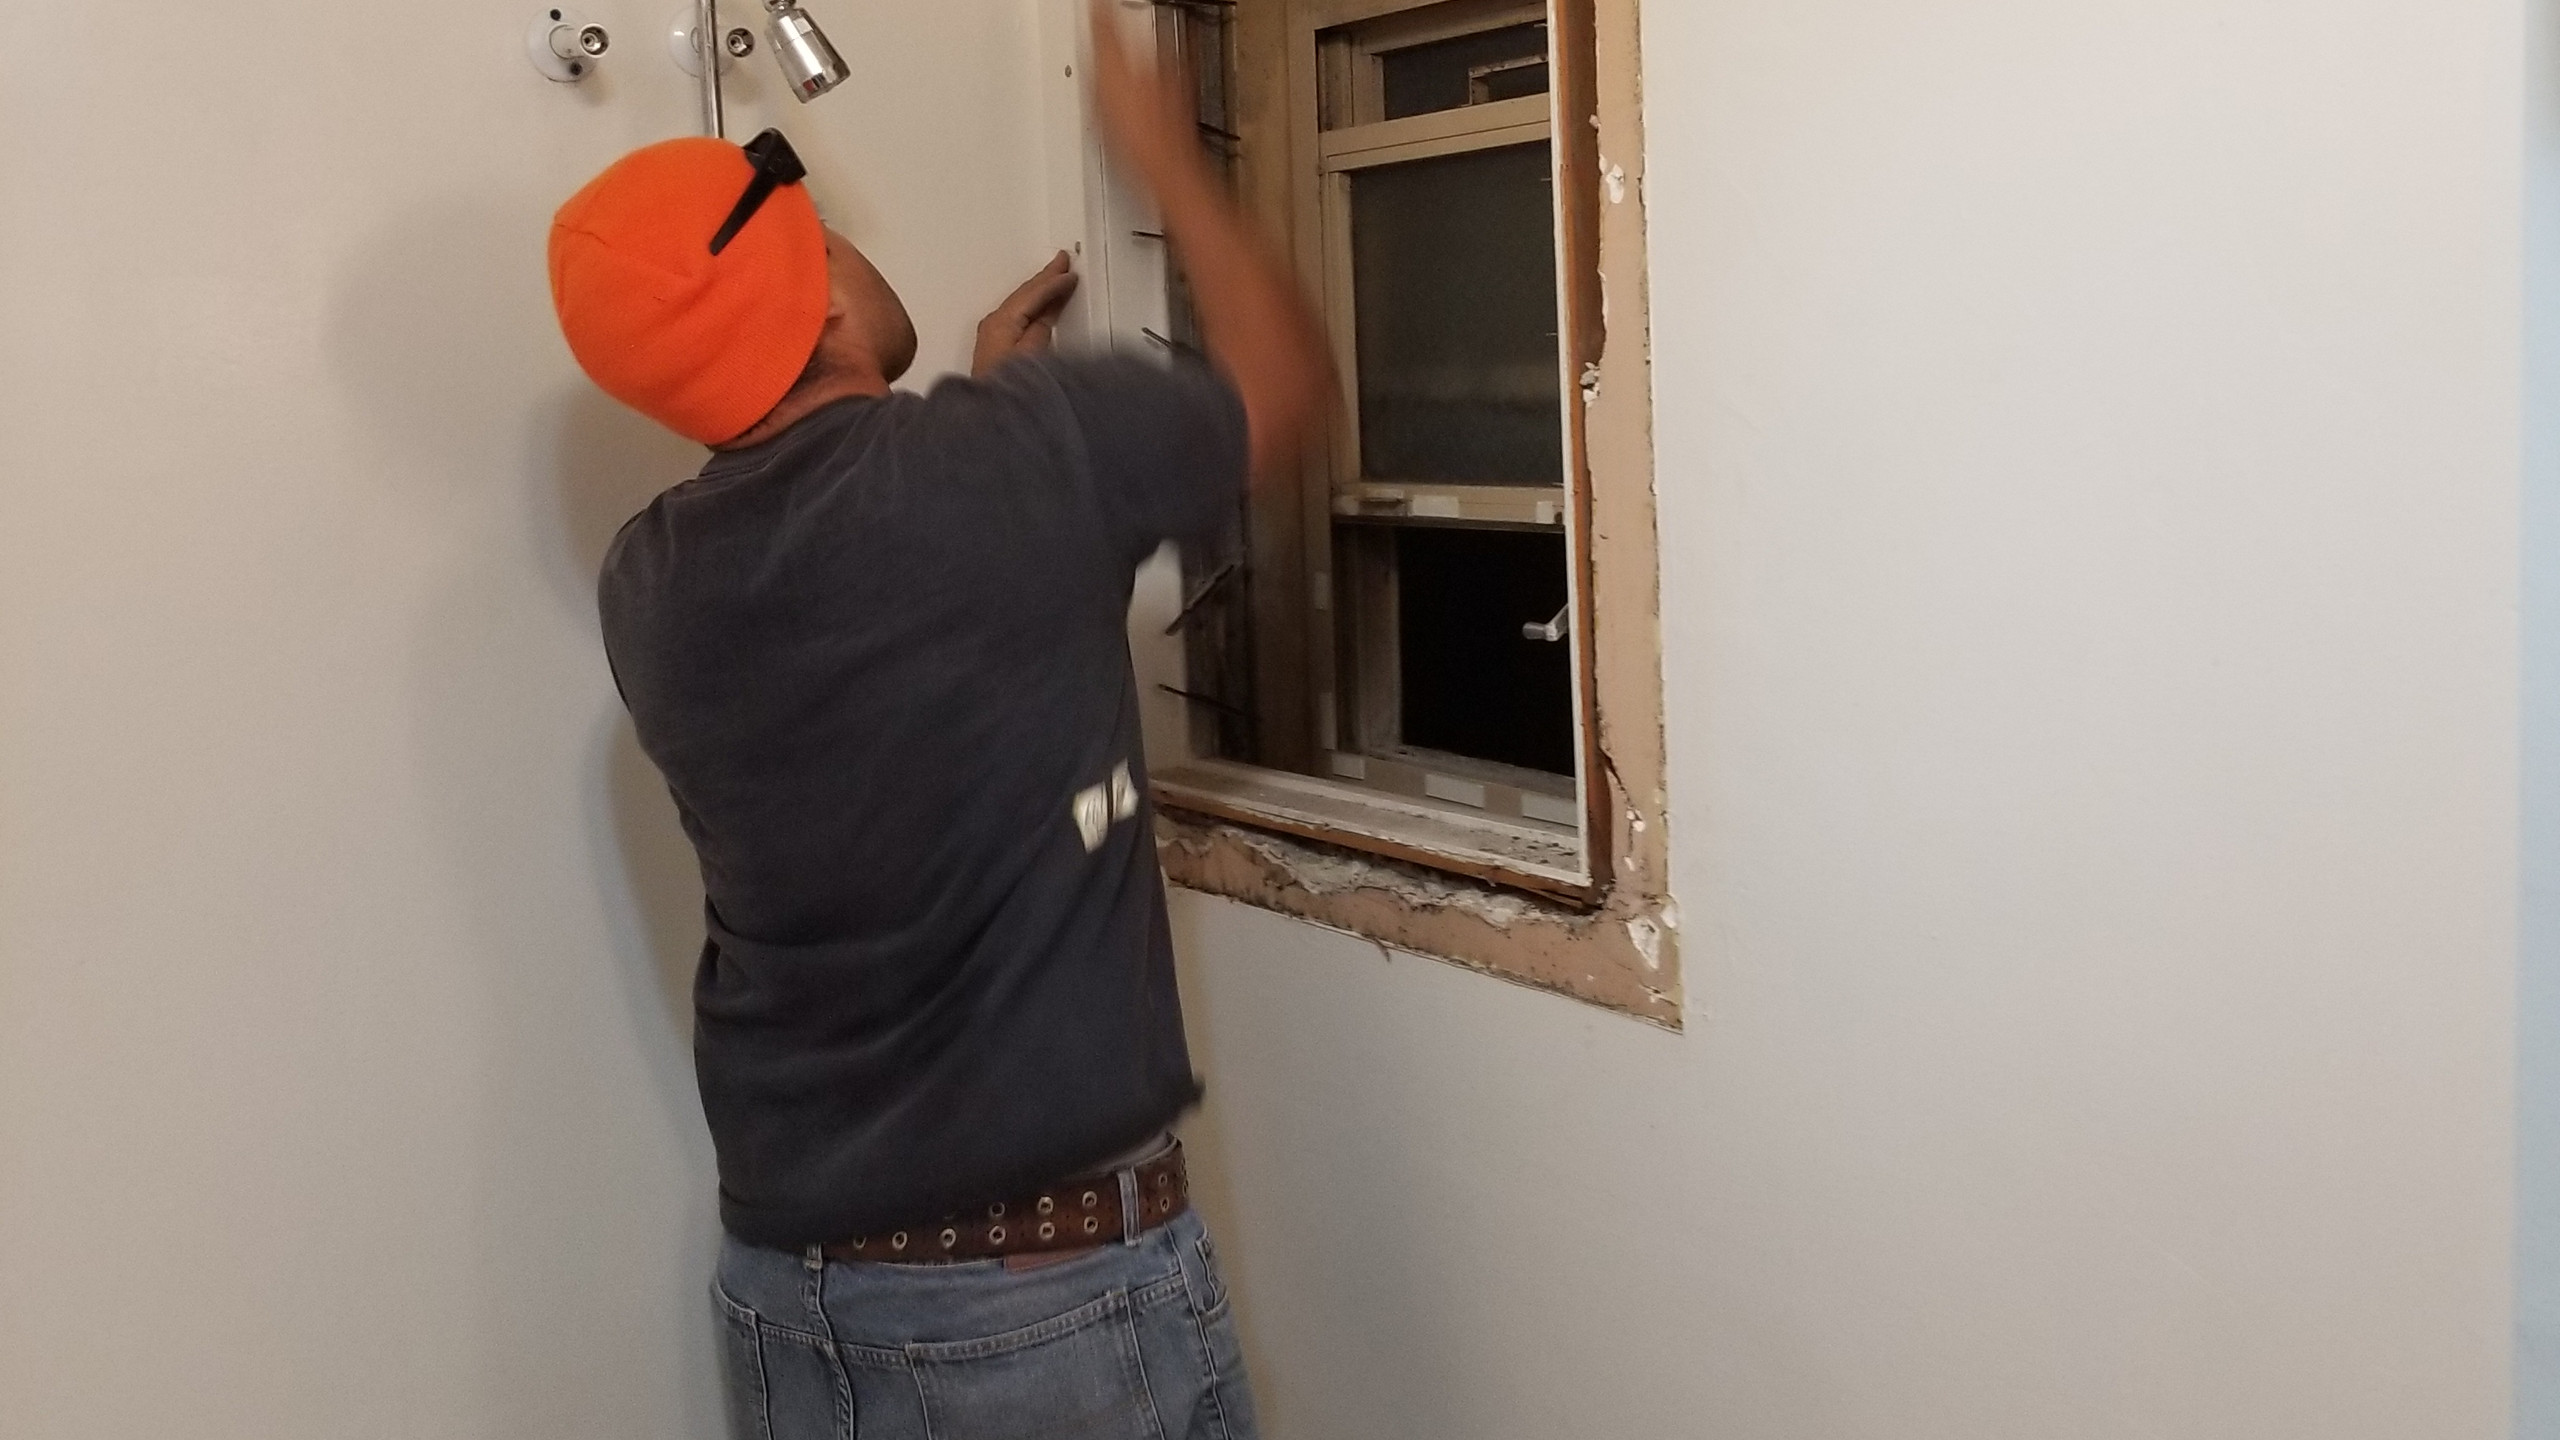 Removal of the interior window, while leaving in place the metal exterior window